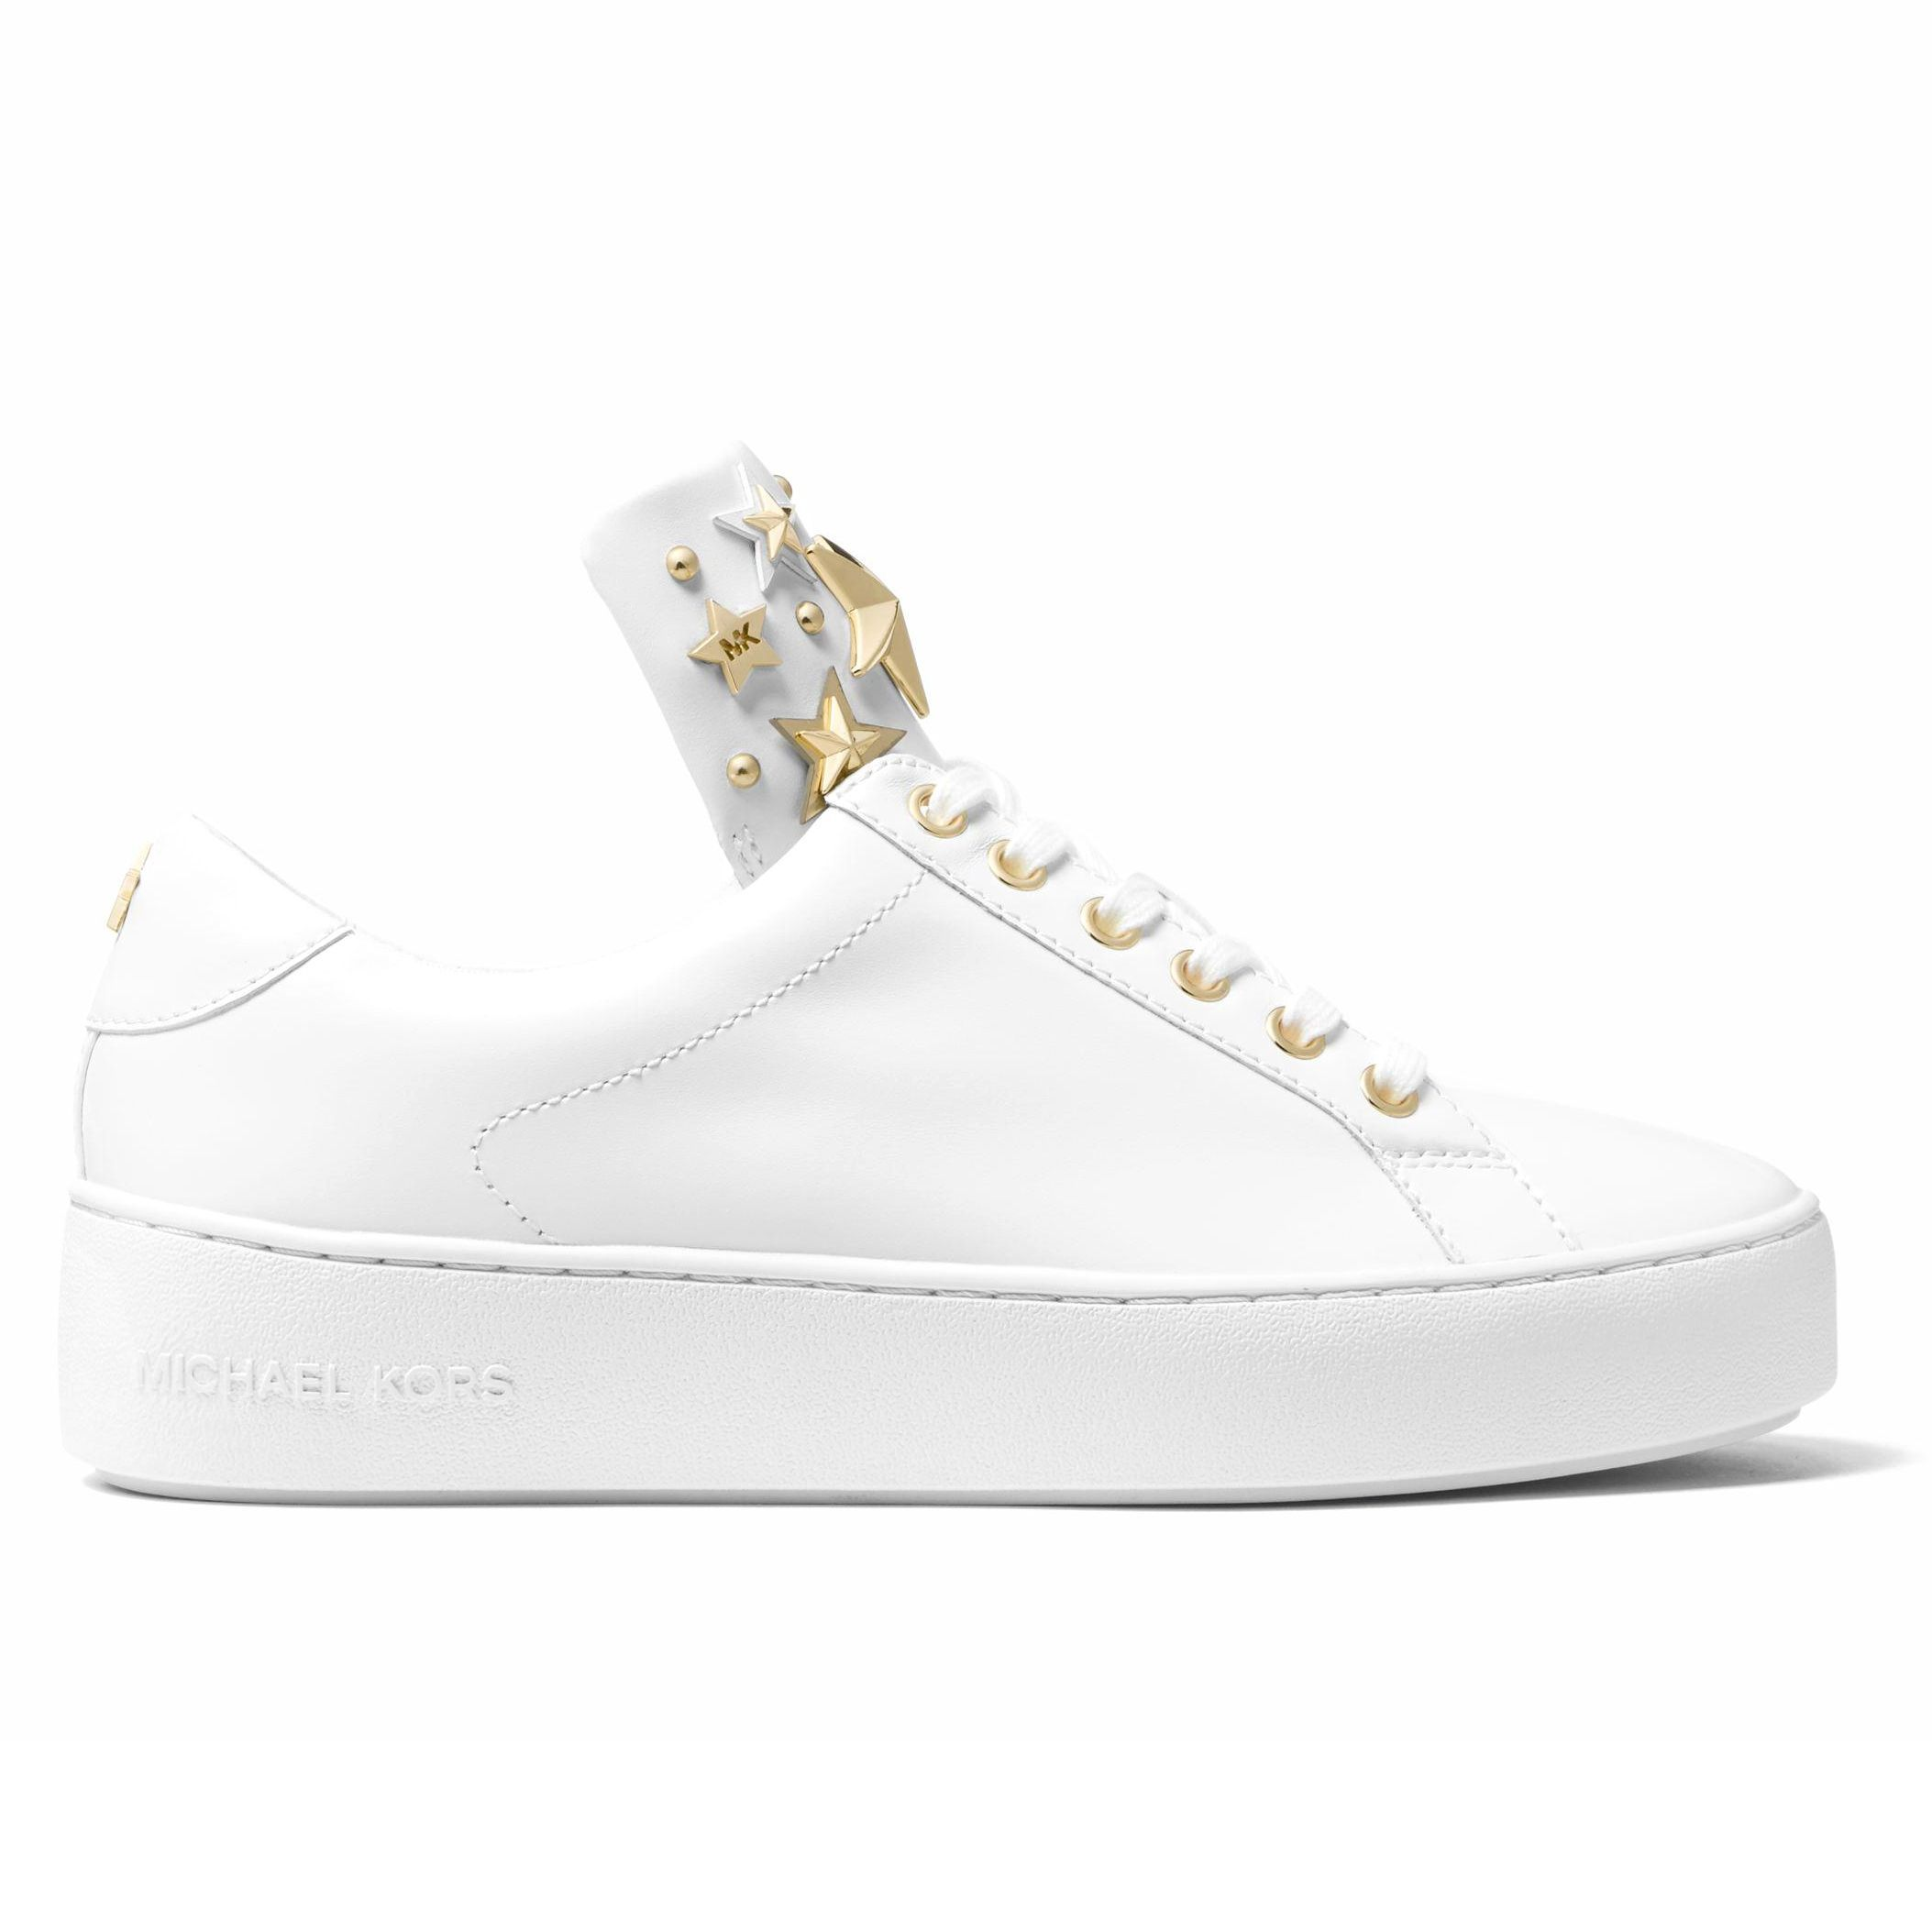 6055f331ba24d6 Sneakers Michael Kors Mindy bianche con stelle oro | sangiorgiomerate.it